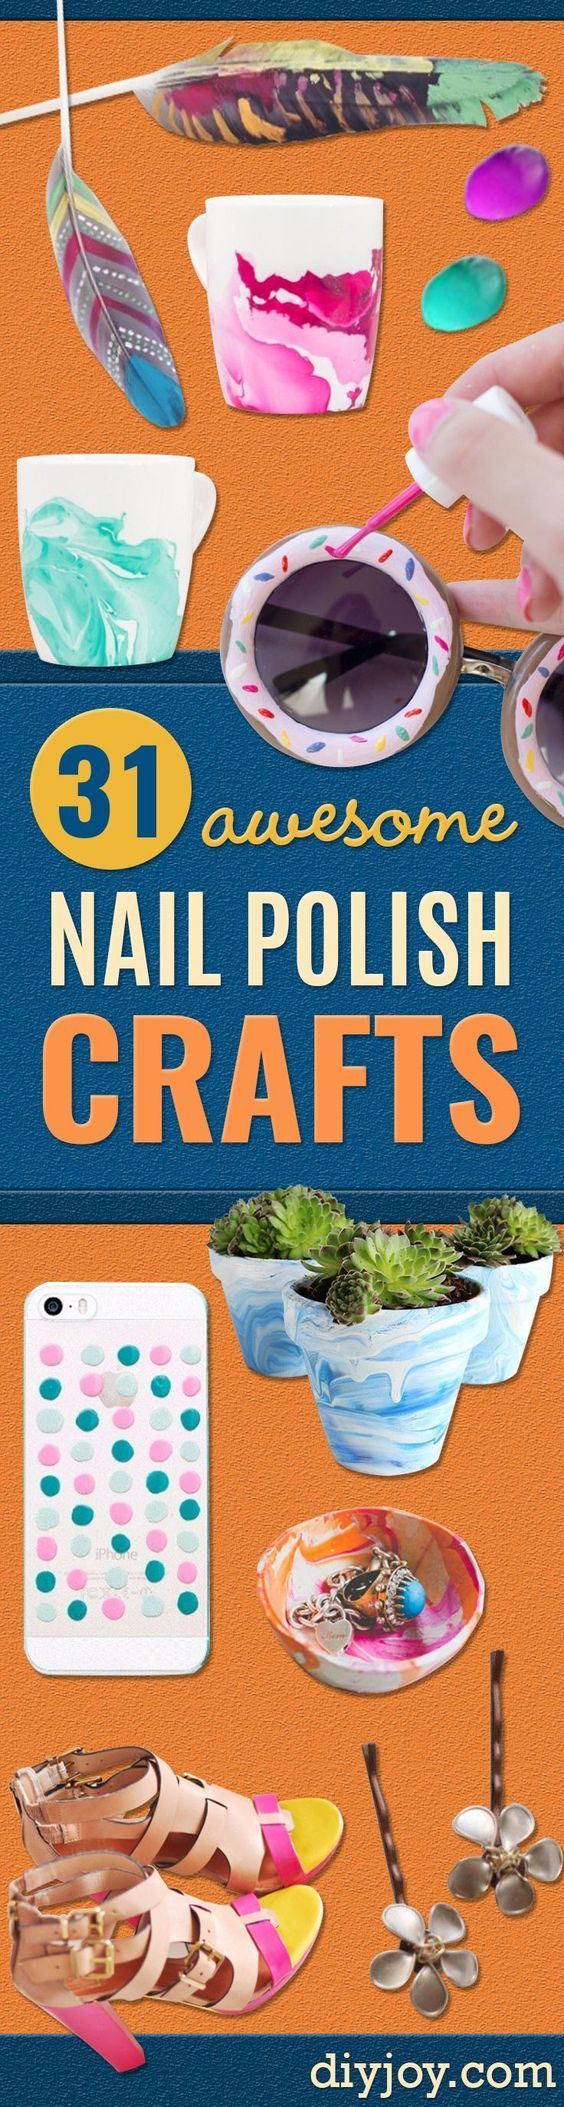 25 best ideas about nail polish flowers on pinterest for Nail polish crafts